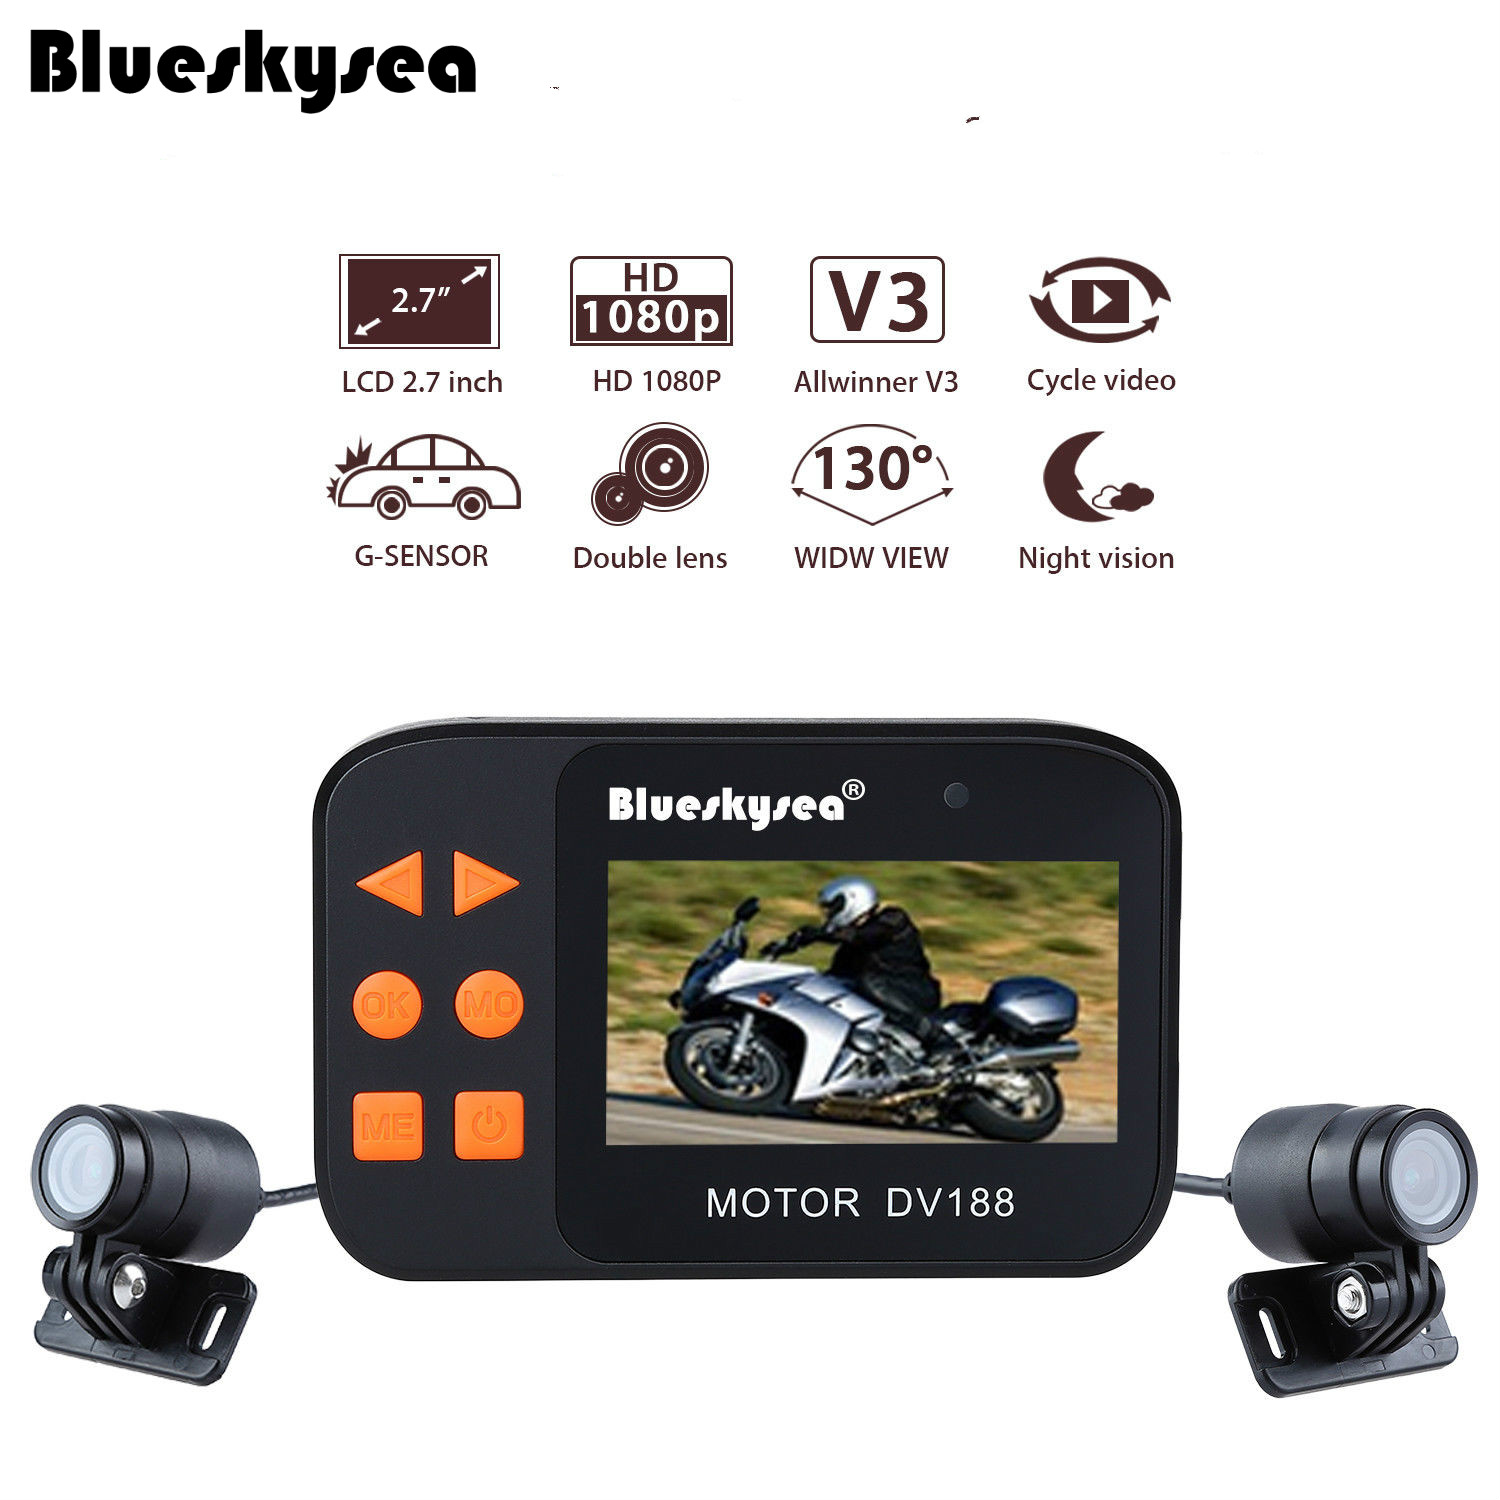 Blueskysea DV188 Action Sports Camera Video DVR Bike Motorcycle Car Vehicle Cam 1080P Waterproof Dual Lens Dashcamera Camcorder